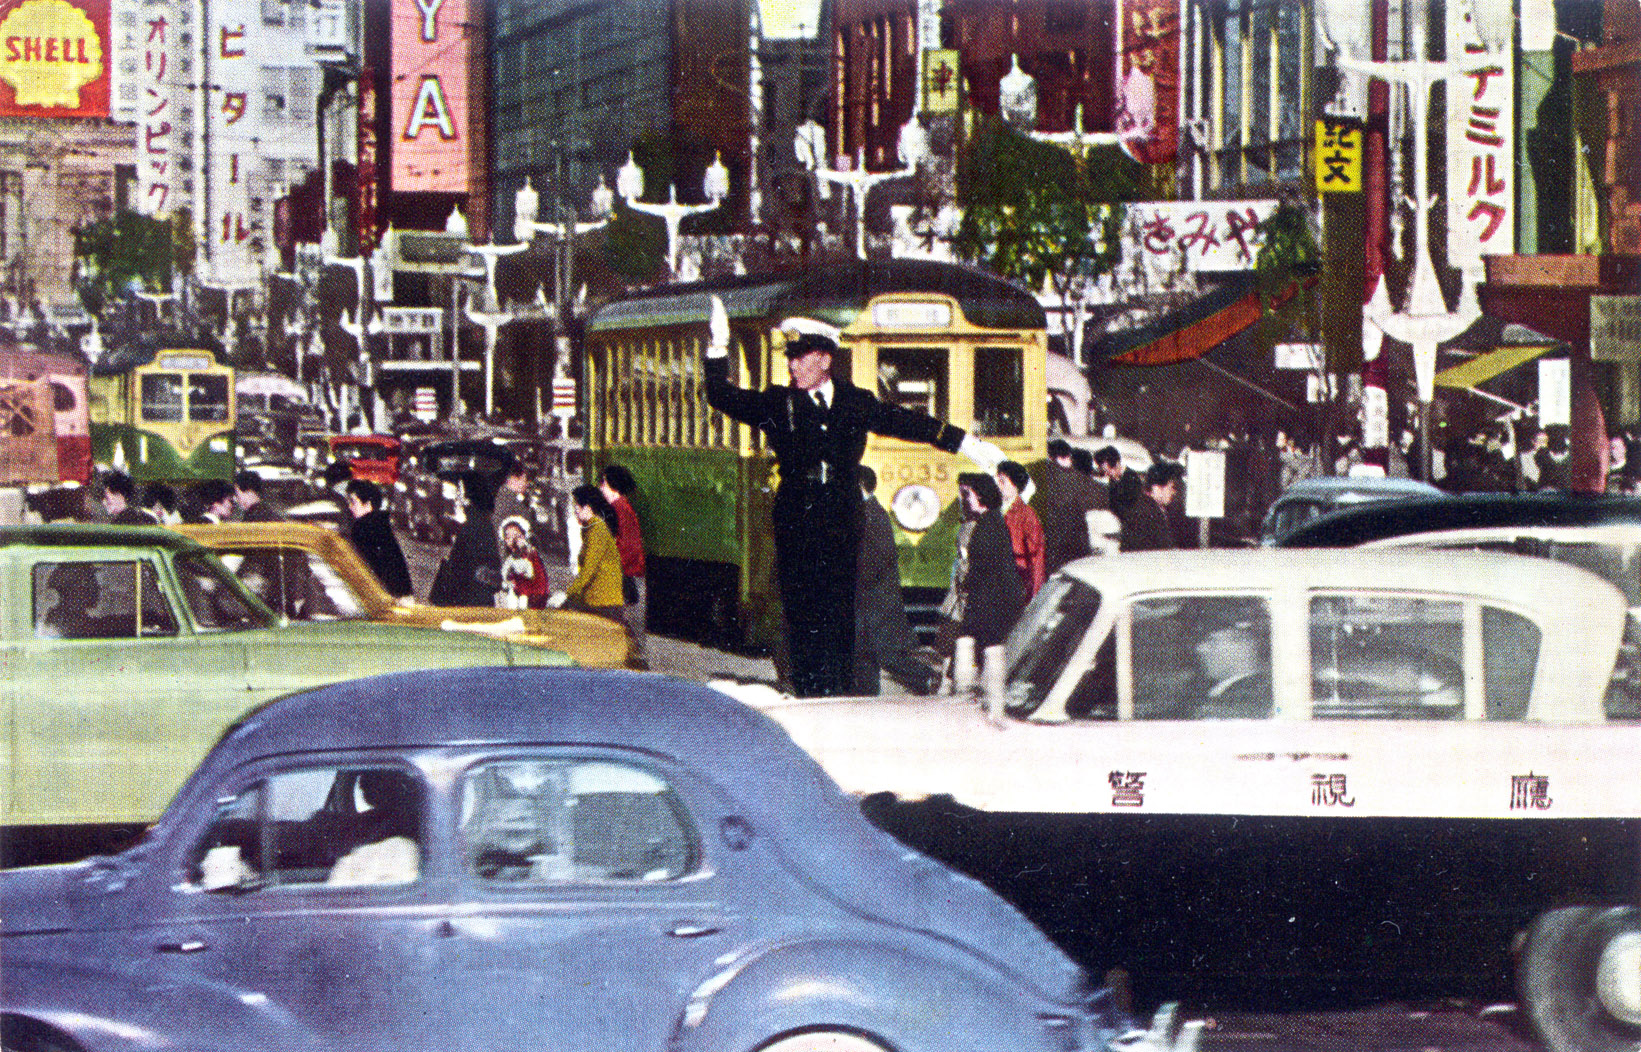 Streetcar History File Peter Witt Streetcar In A Truck And